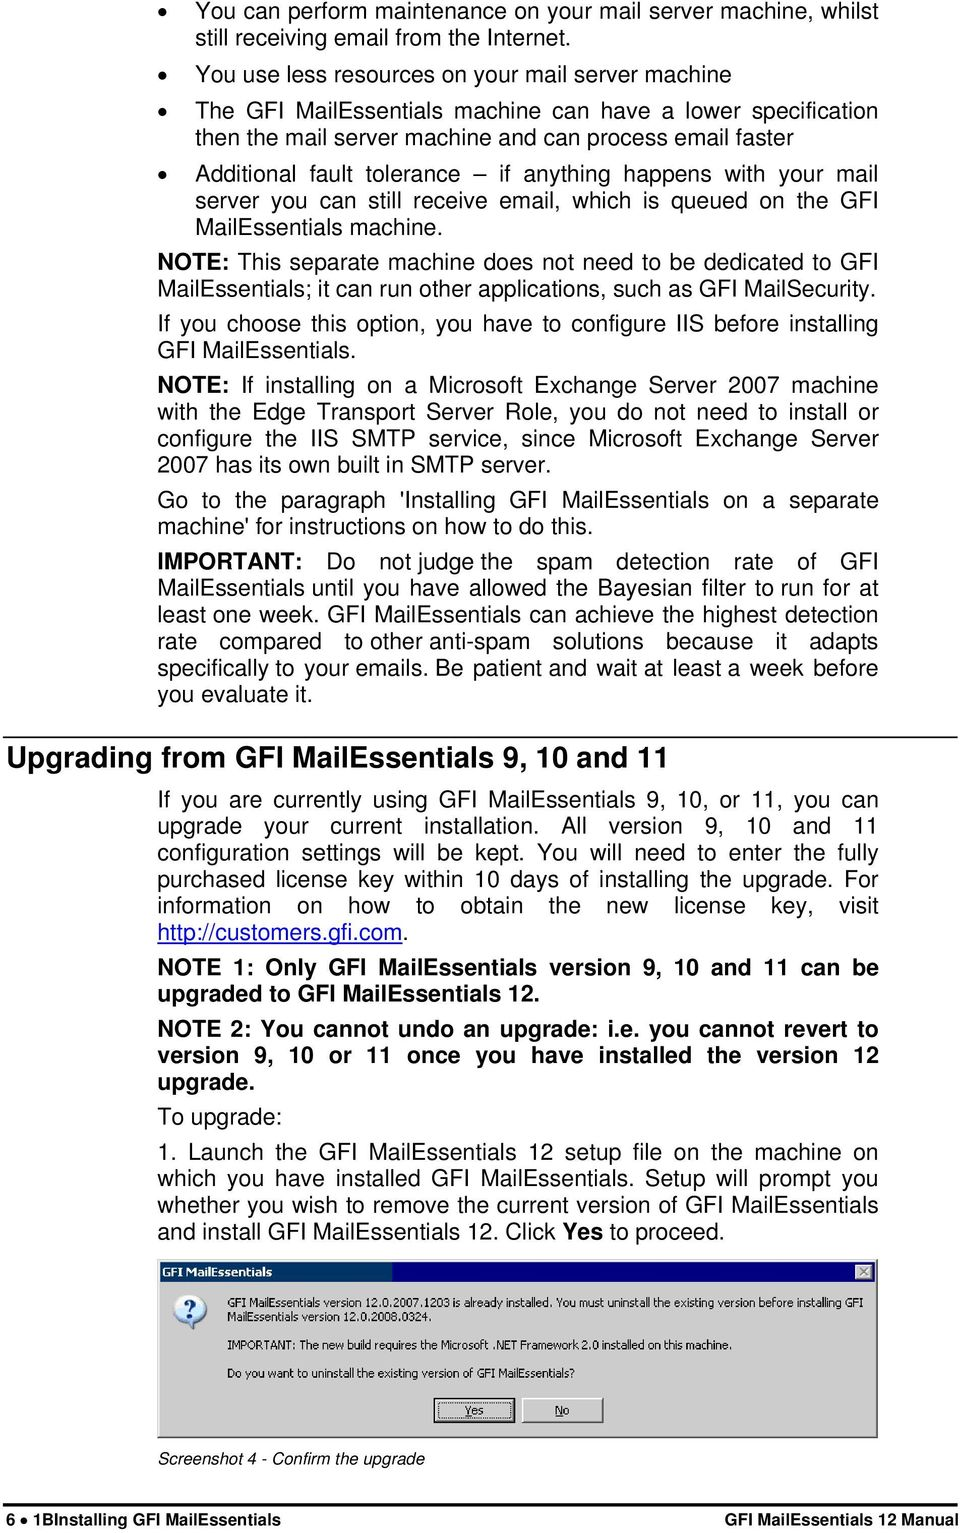 if anything happens with your mail server you can still receive email, which is queued on the GFI MailEssentials machine.